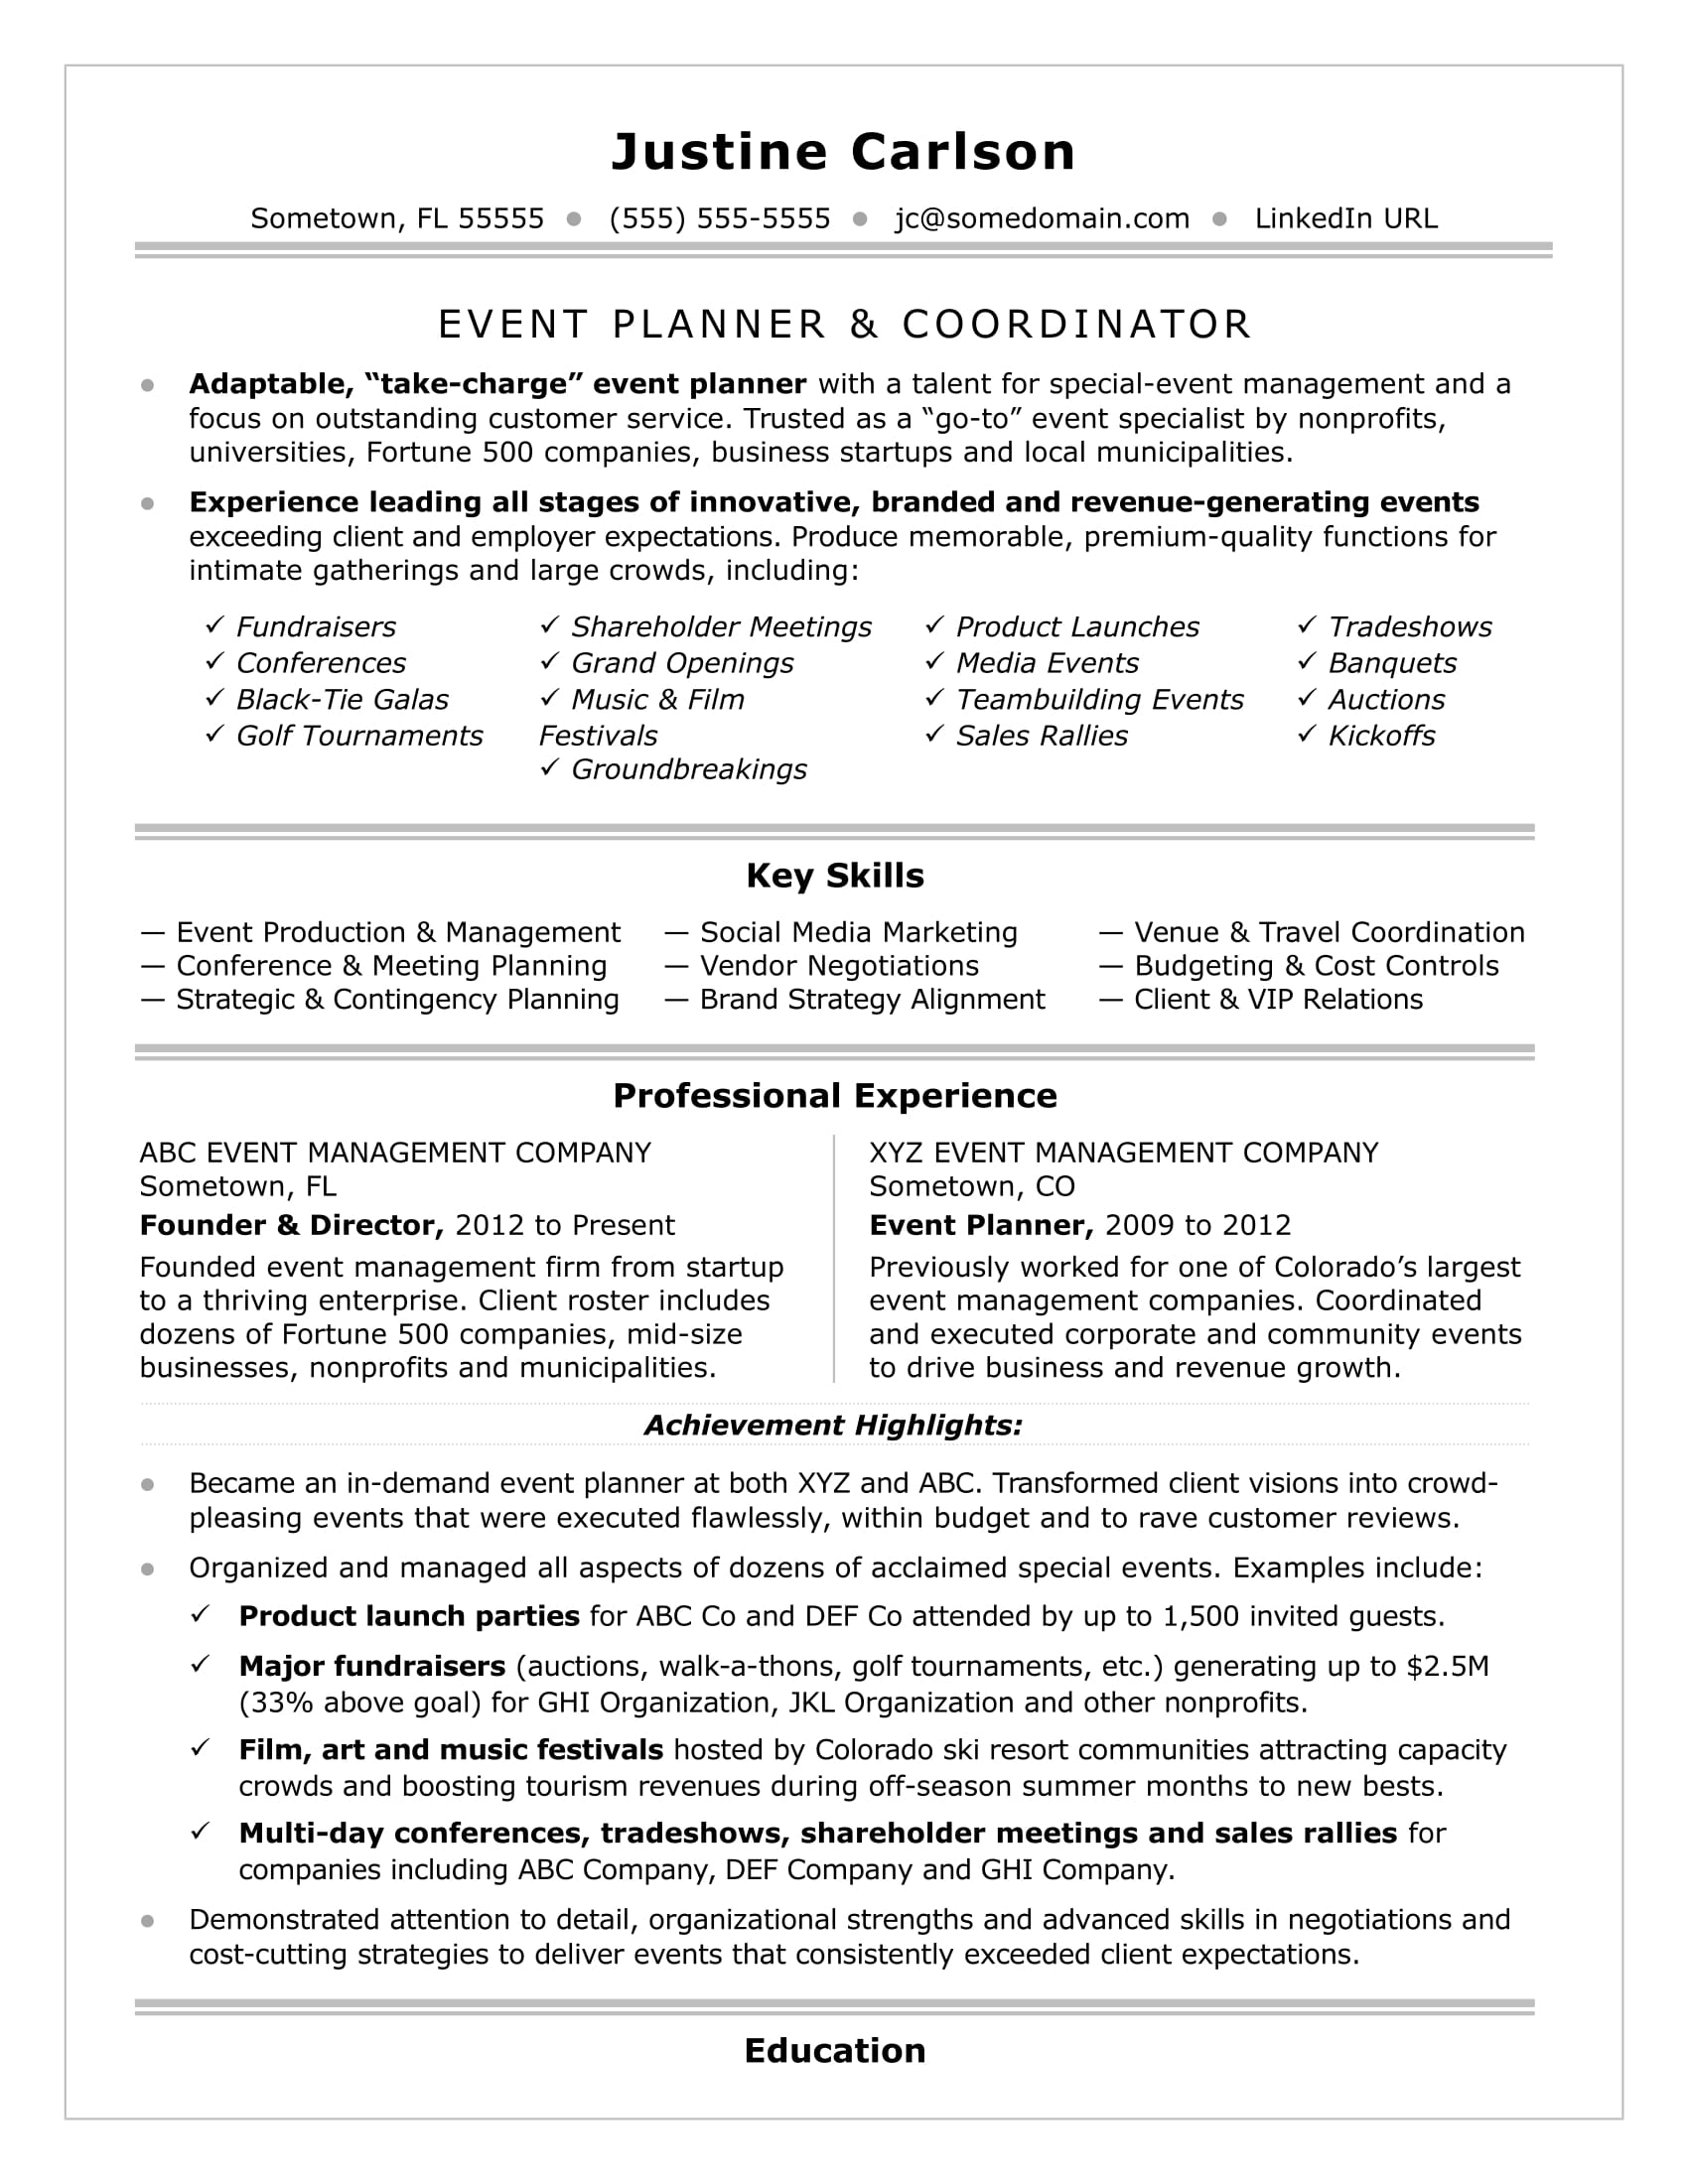 event coordinator resume sample monster recruiting planner fire department samples Resume Recruiting Coordinator Resume